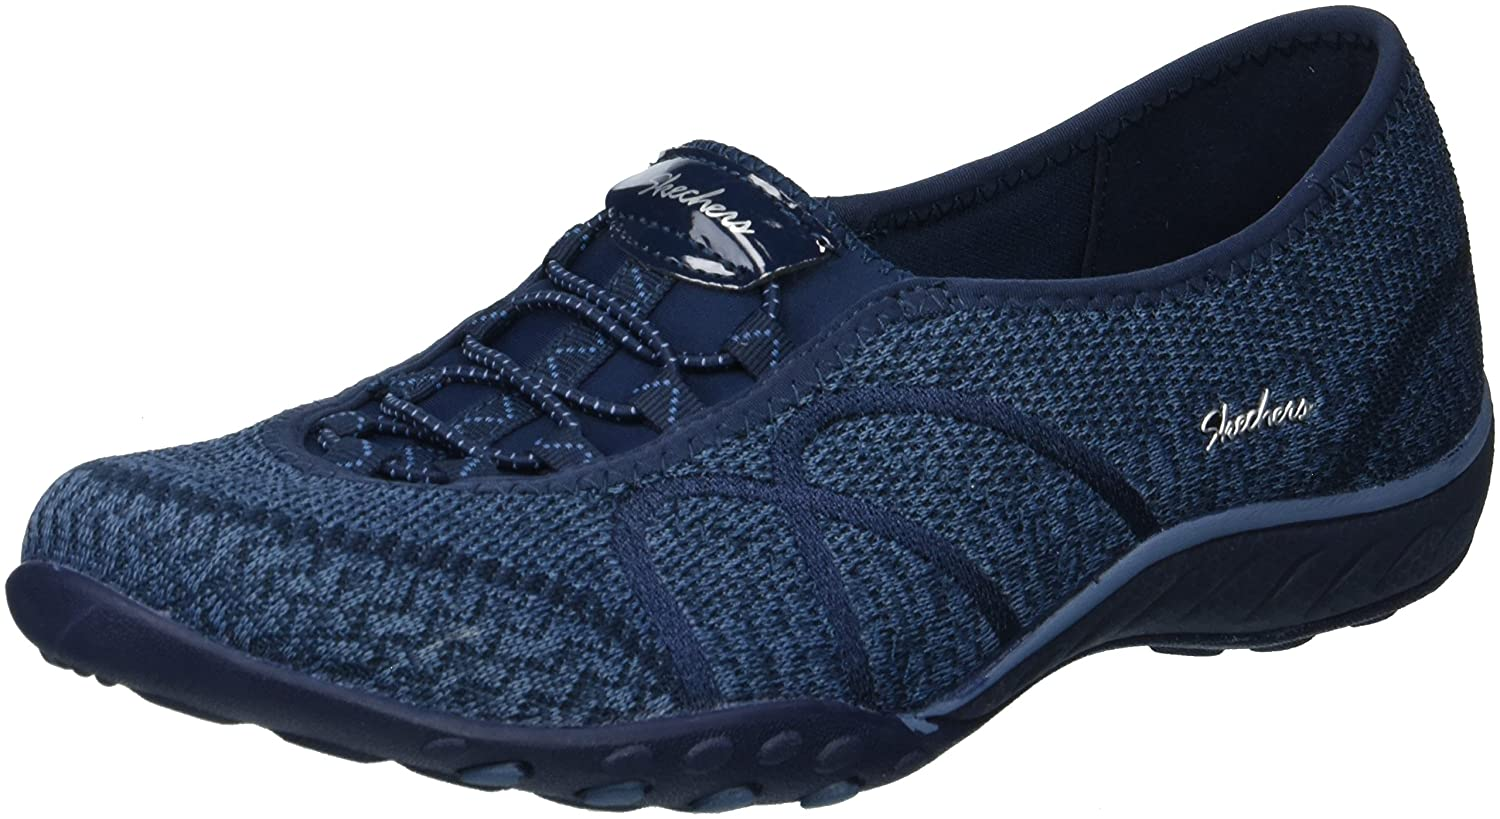 Skechers レディース BREATHE EASY SWEET JAM B07485CT1Q 8 B(M) US|ネイビー ネイビー 8 B(M) US